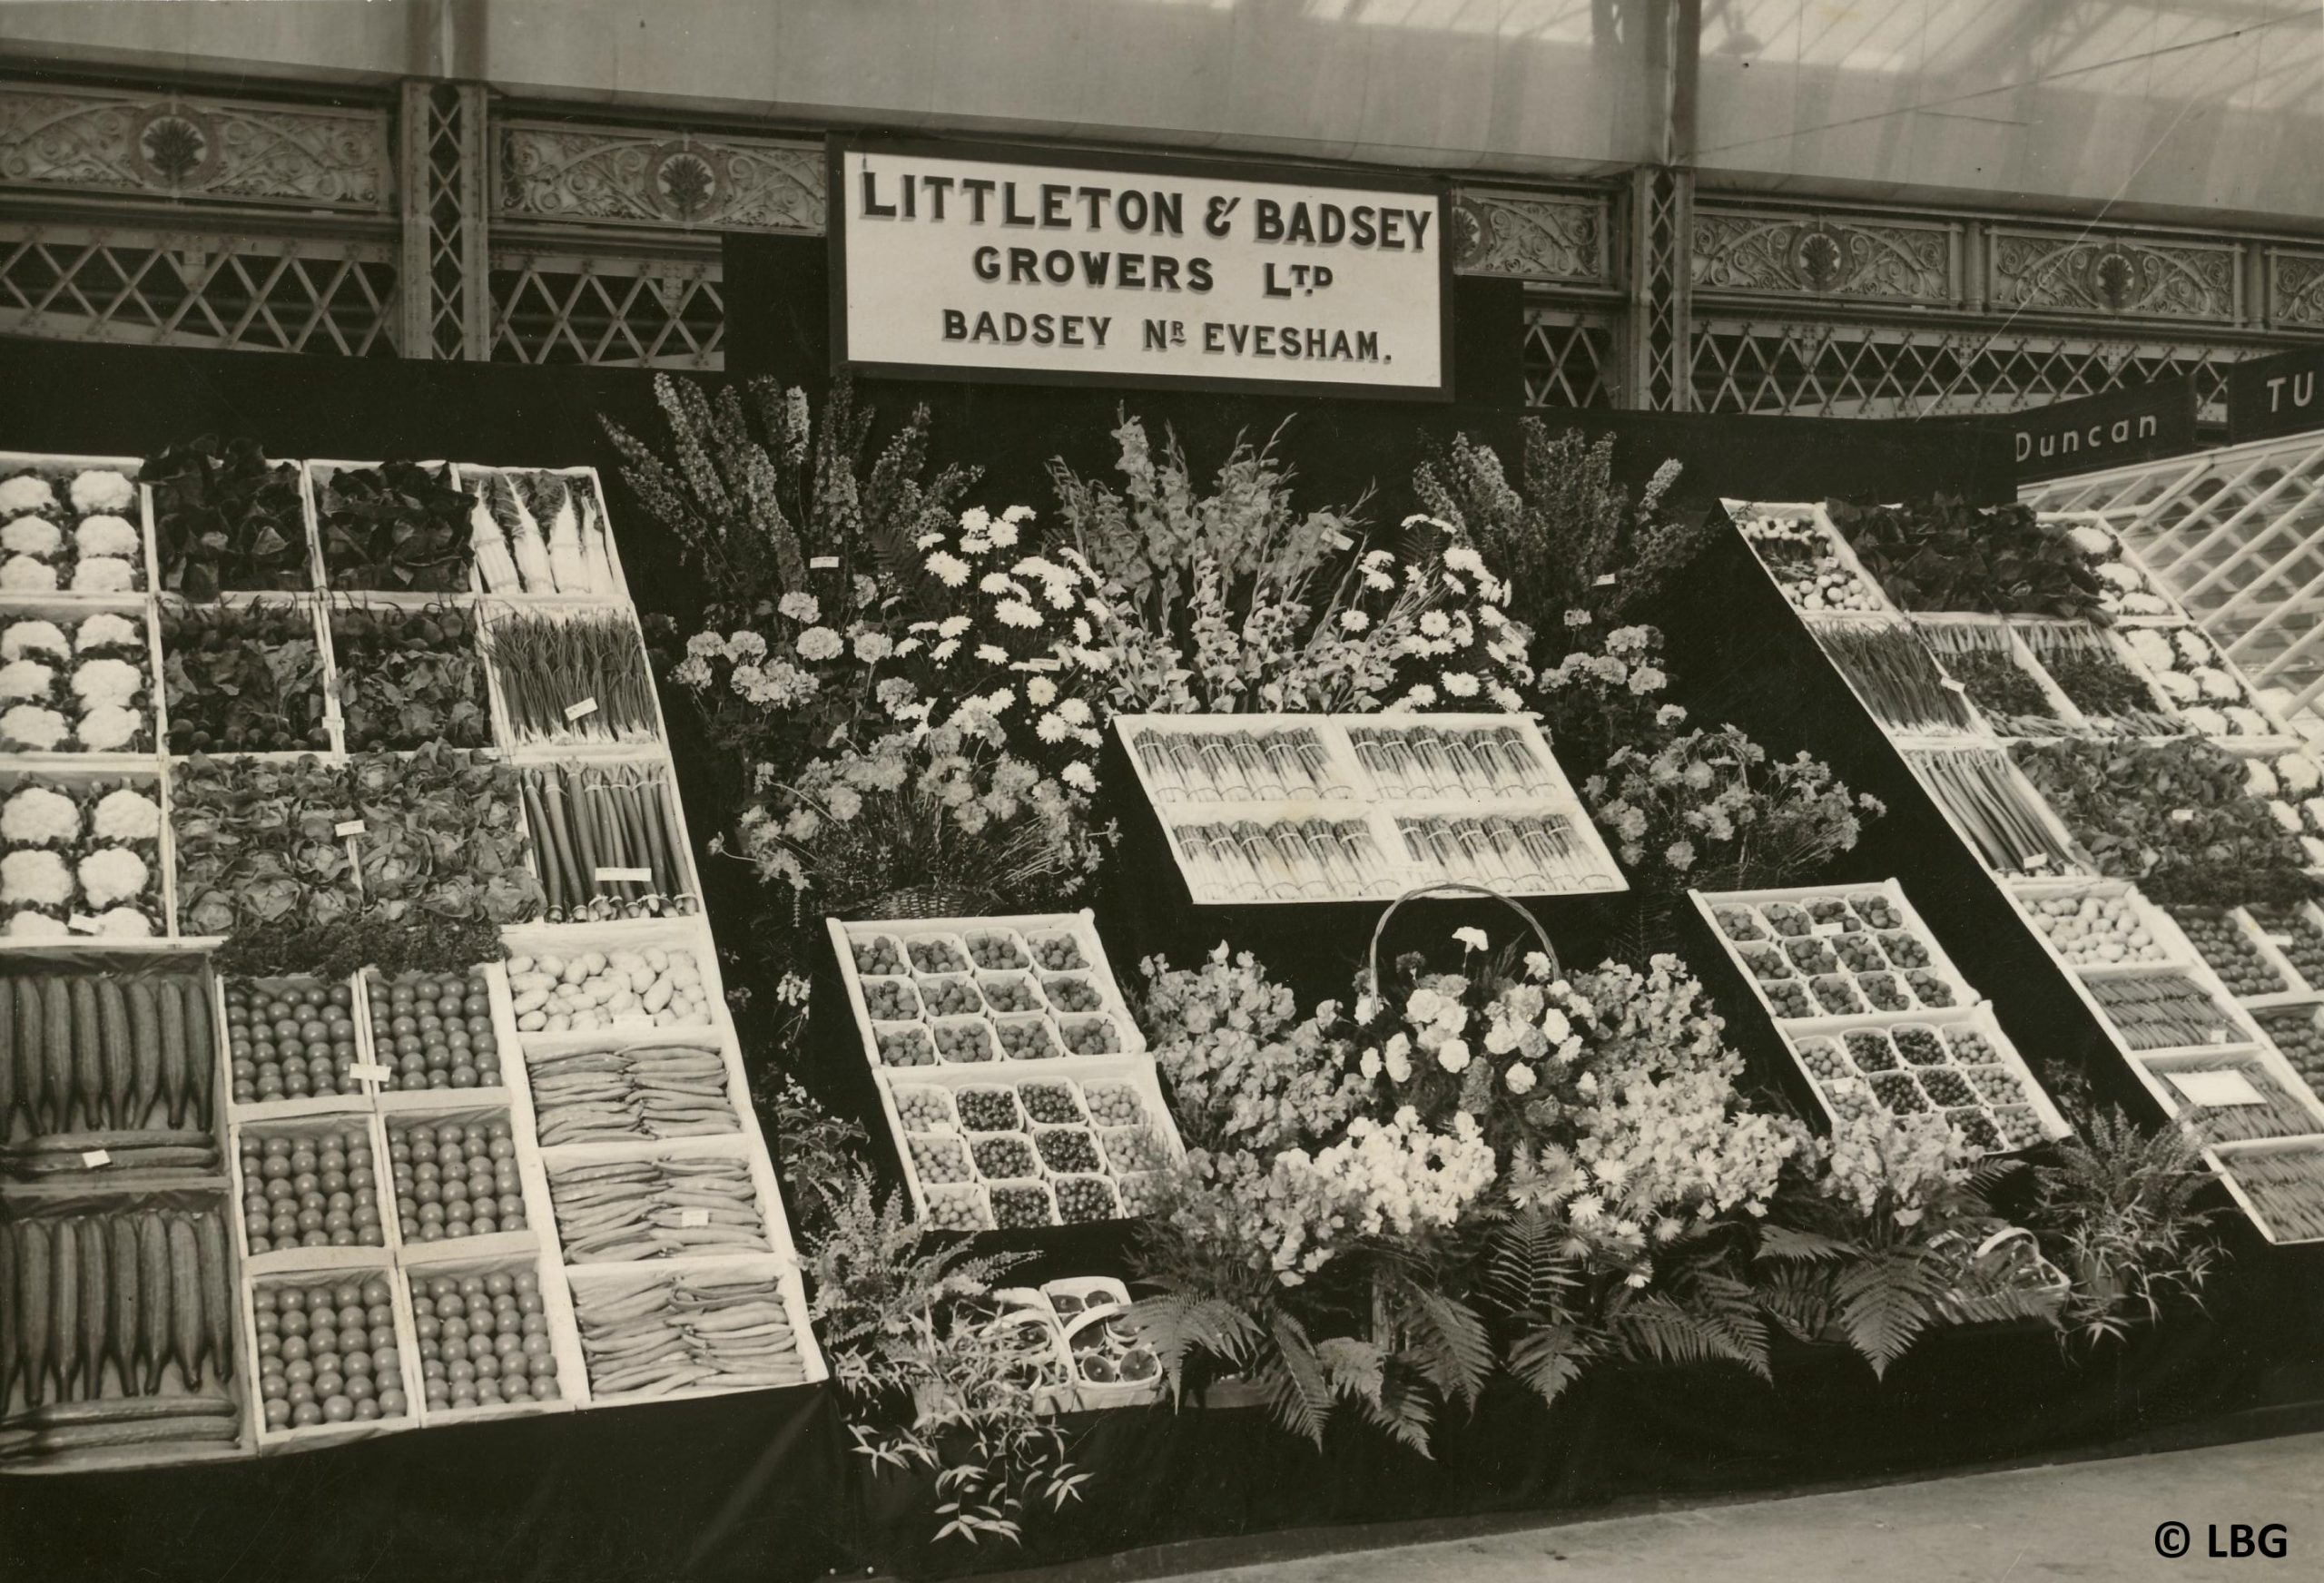 Display of market garden produce at show